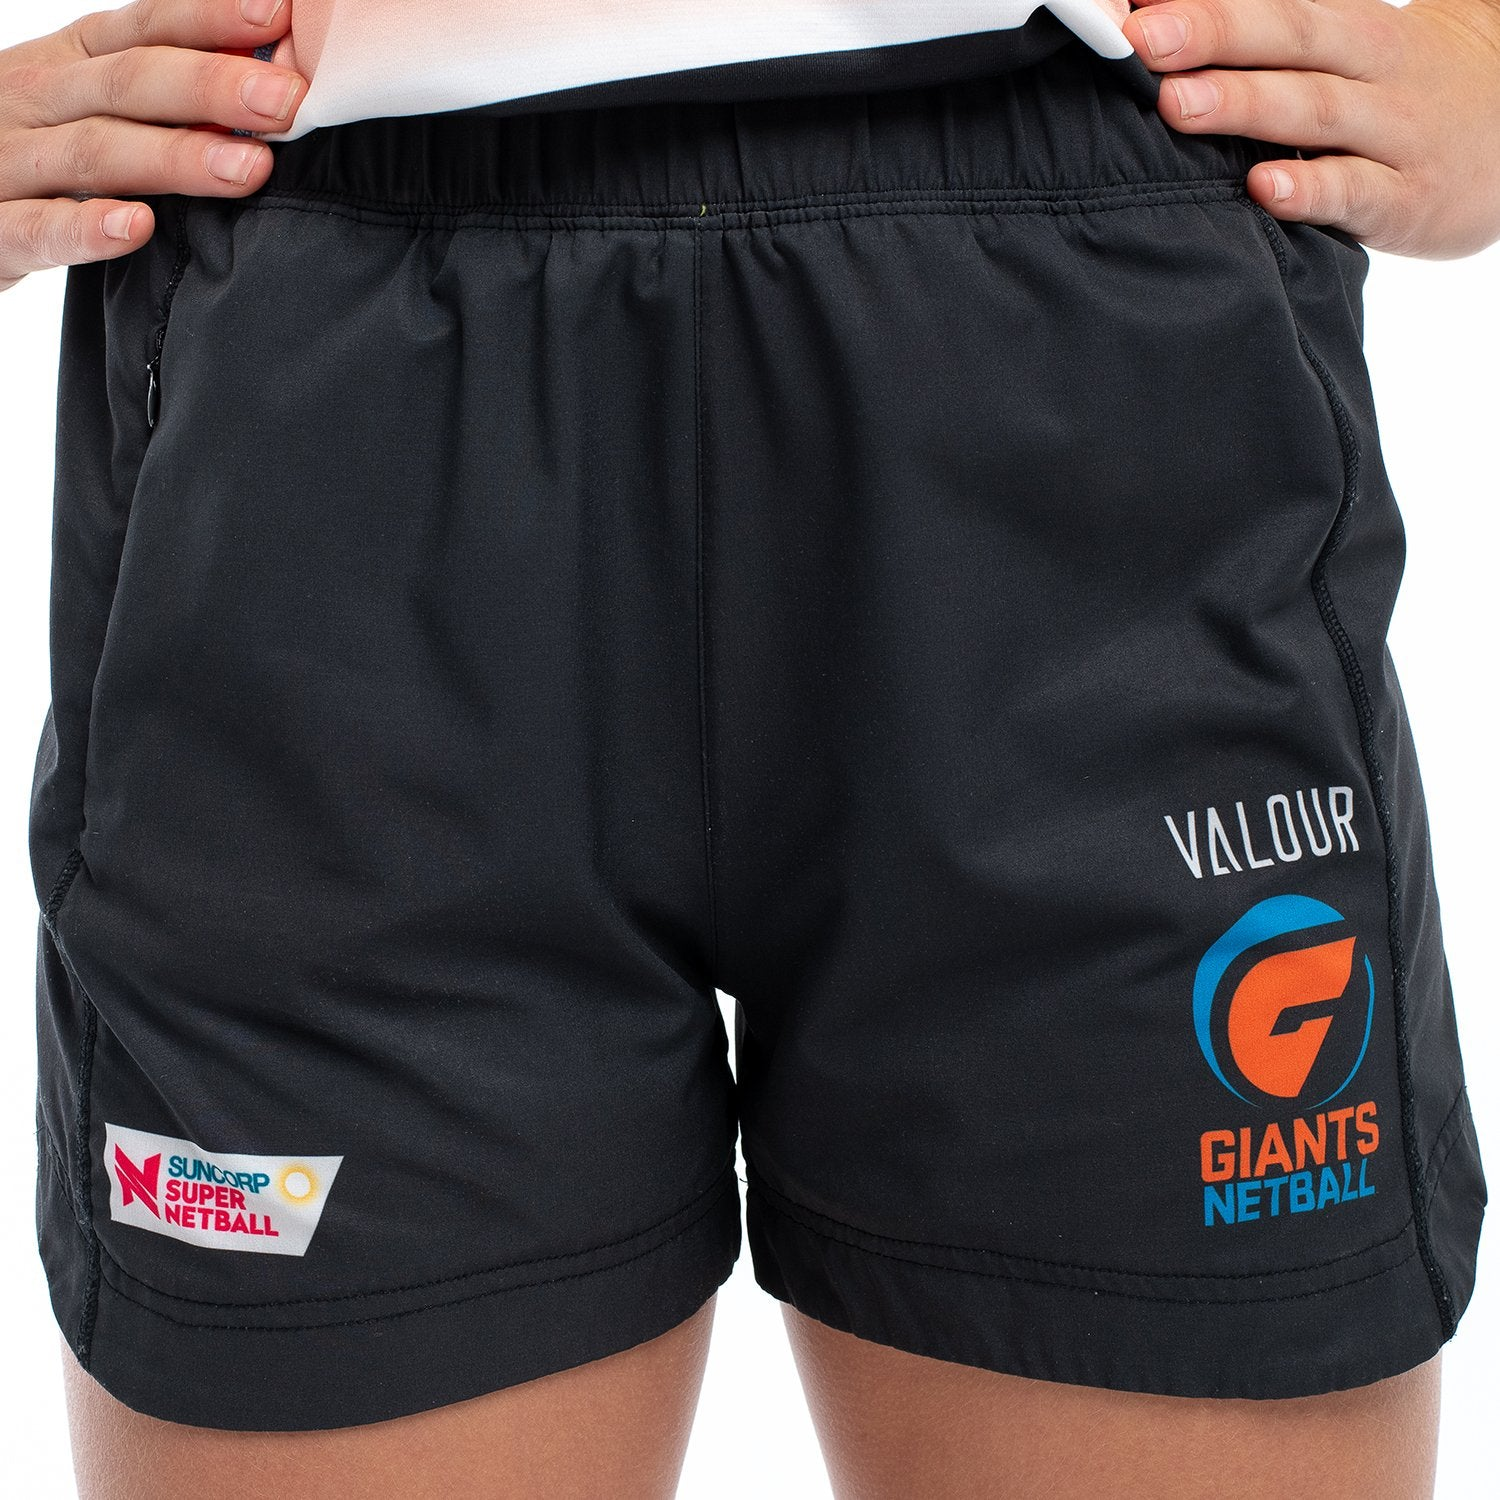 GIANTS Netball Replica Training Shorts